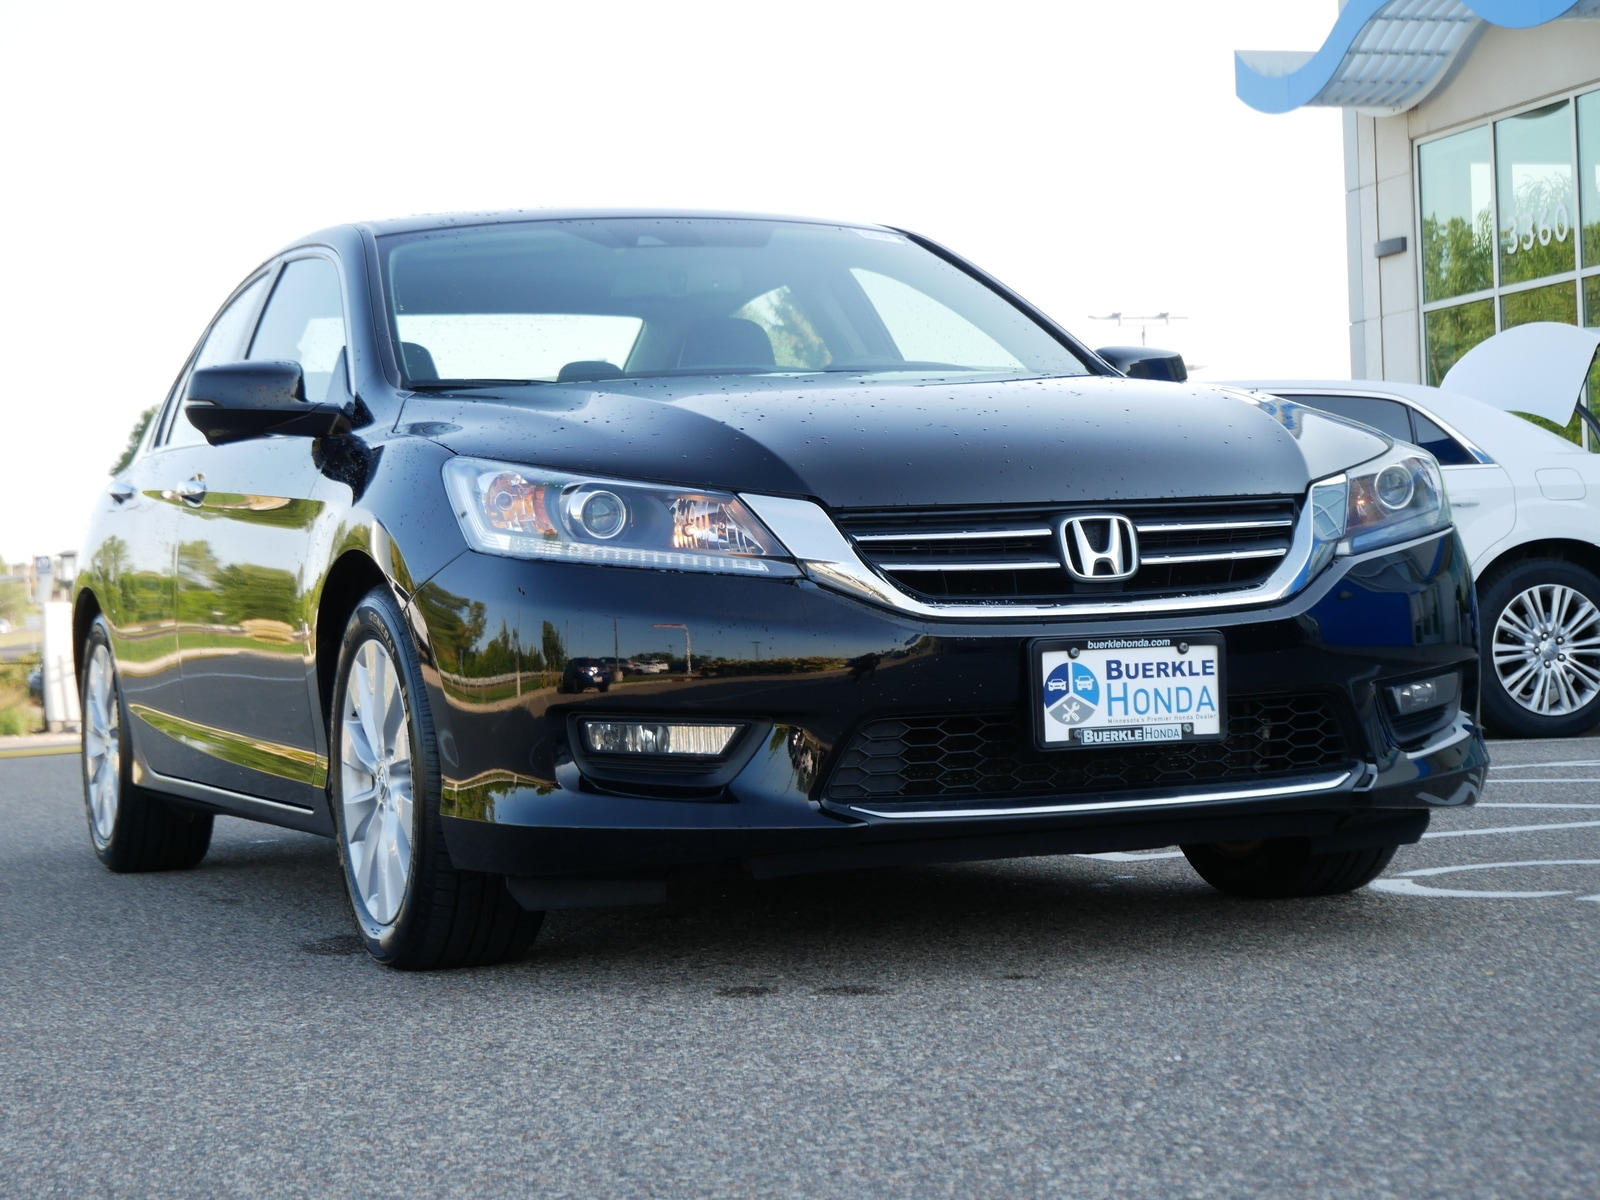 Used 2014 Honda Accord EX-L with VIN 1HGCR2F89EA116098 for sale in Saint Paul, Minnesota